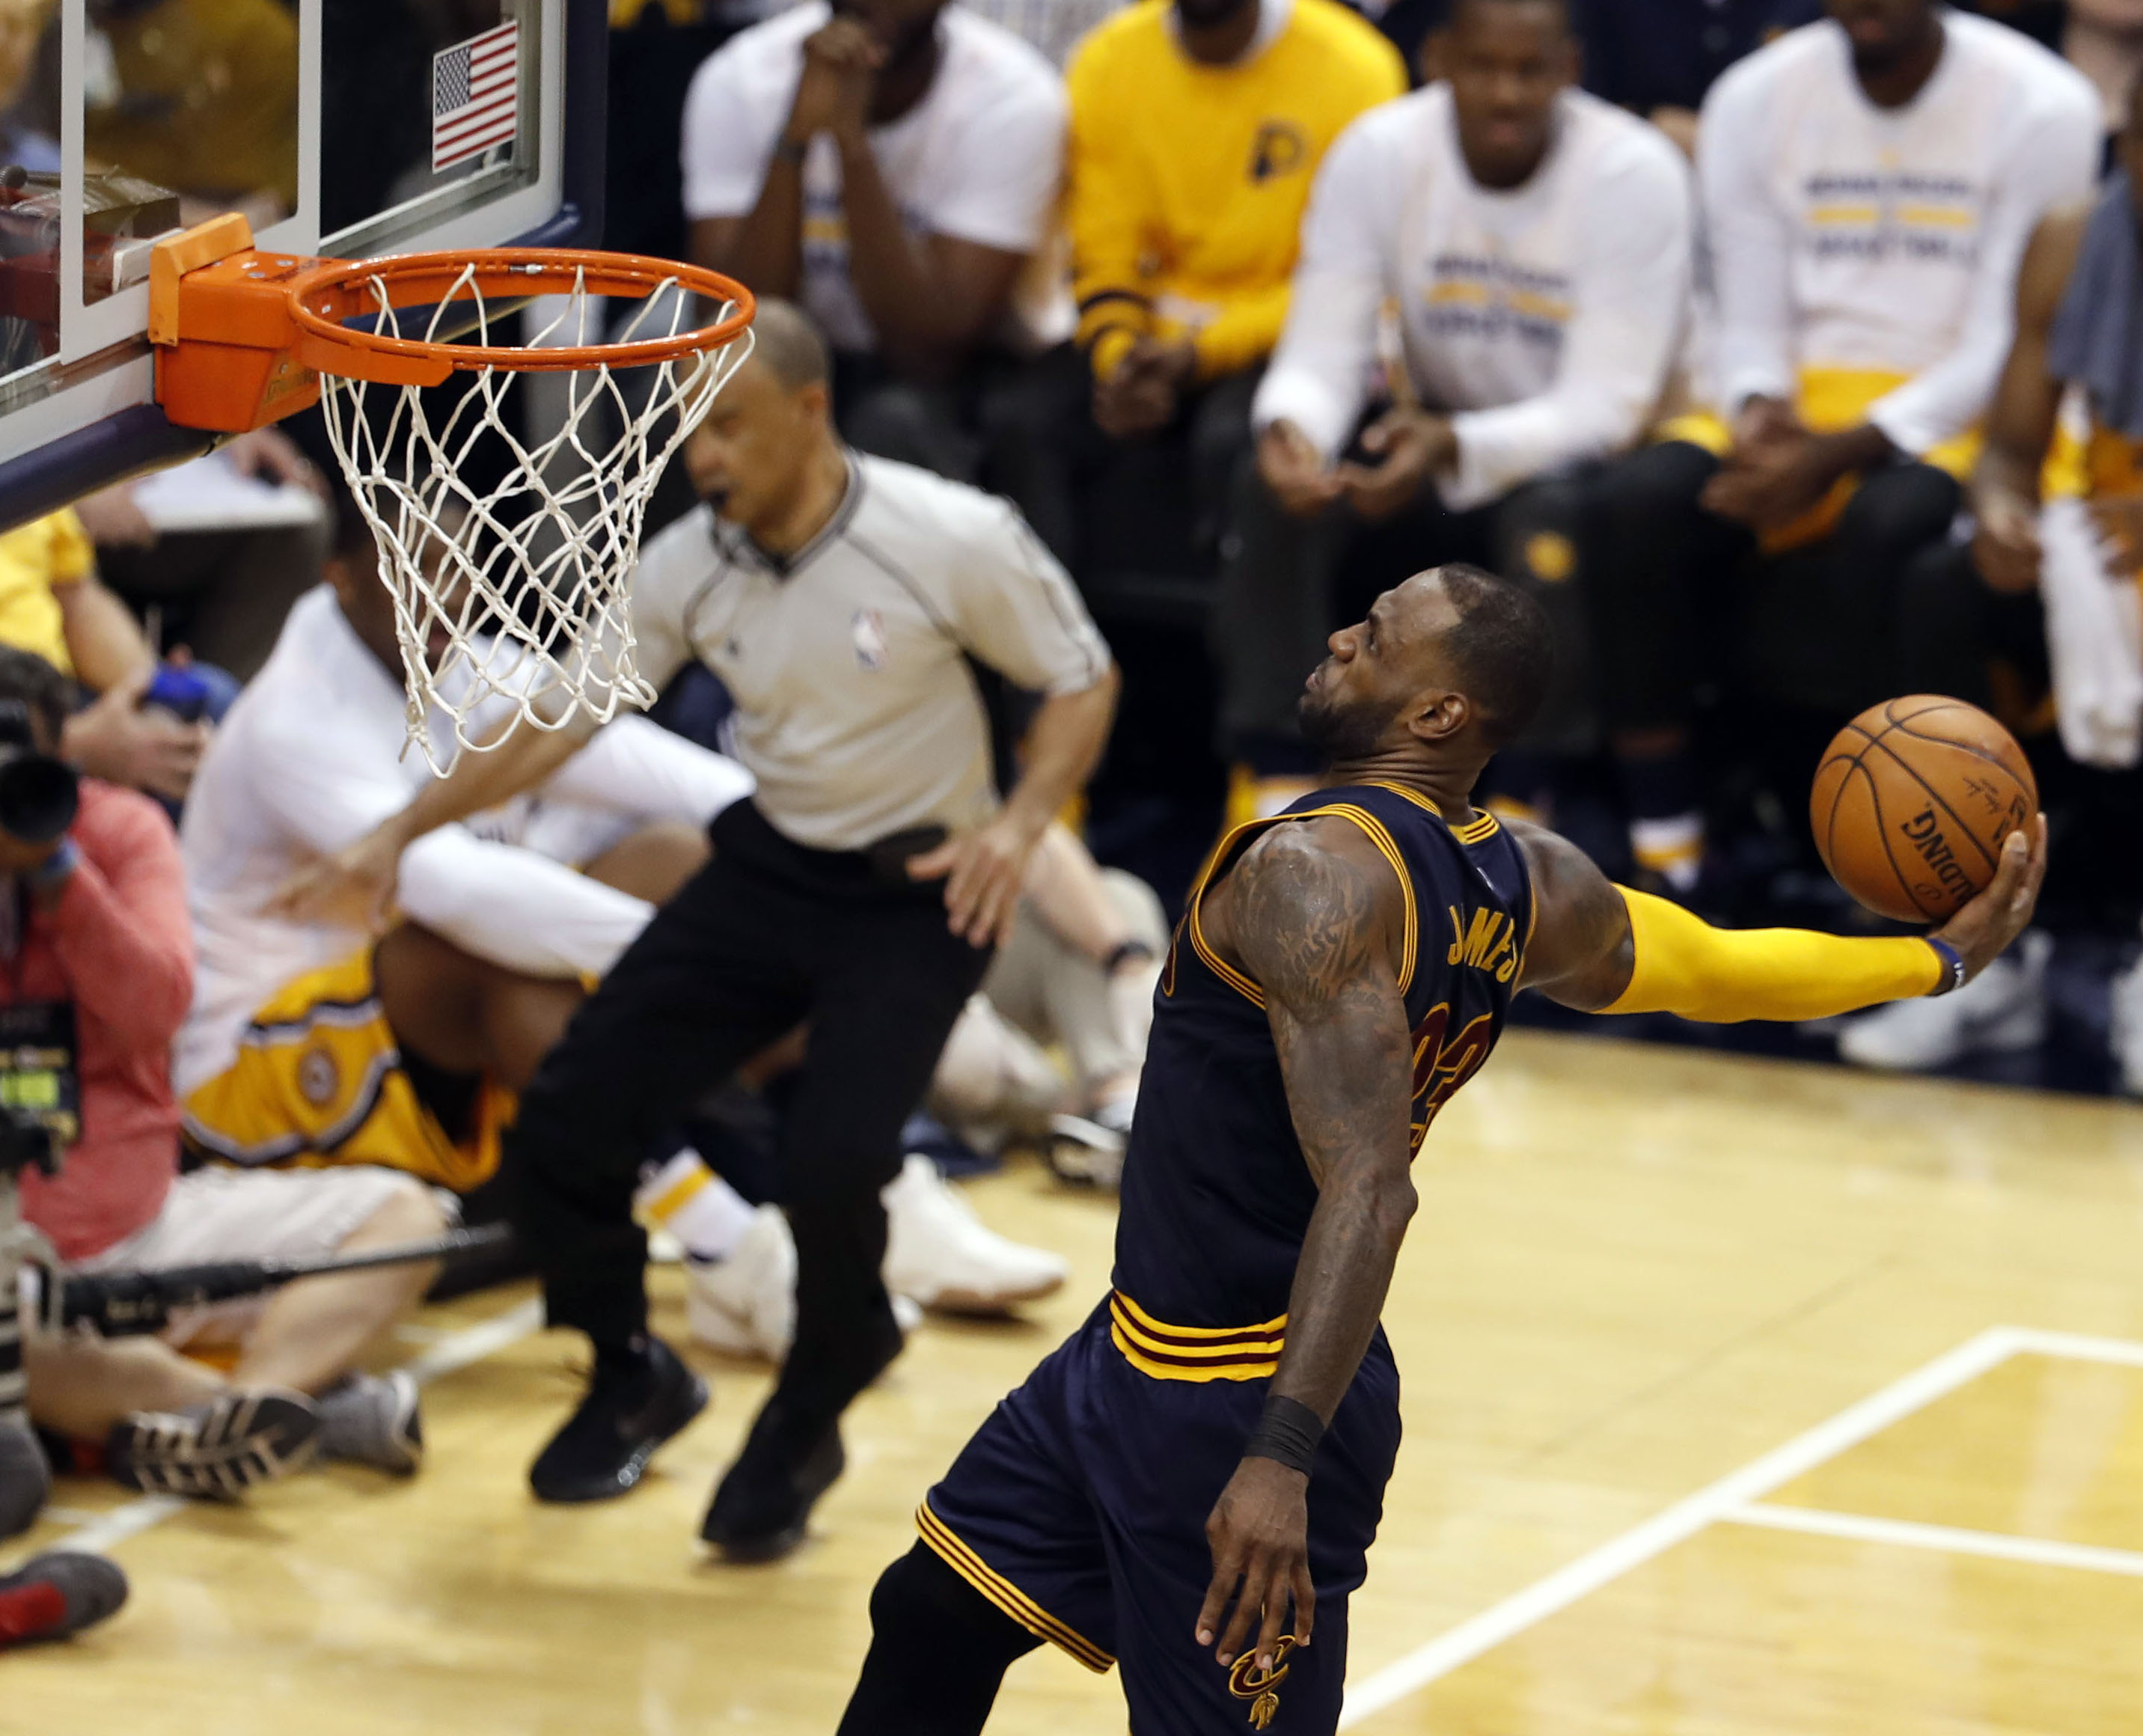 10022686-nba-playoffs-cleveland-cavaliers-at-indiana-pacers